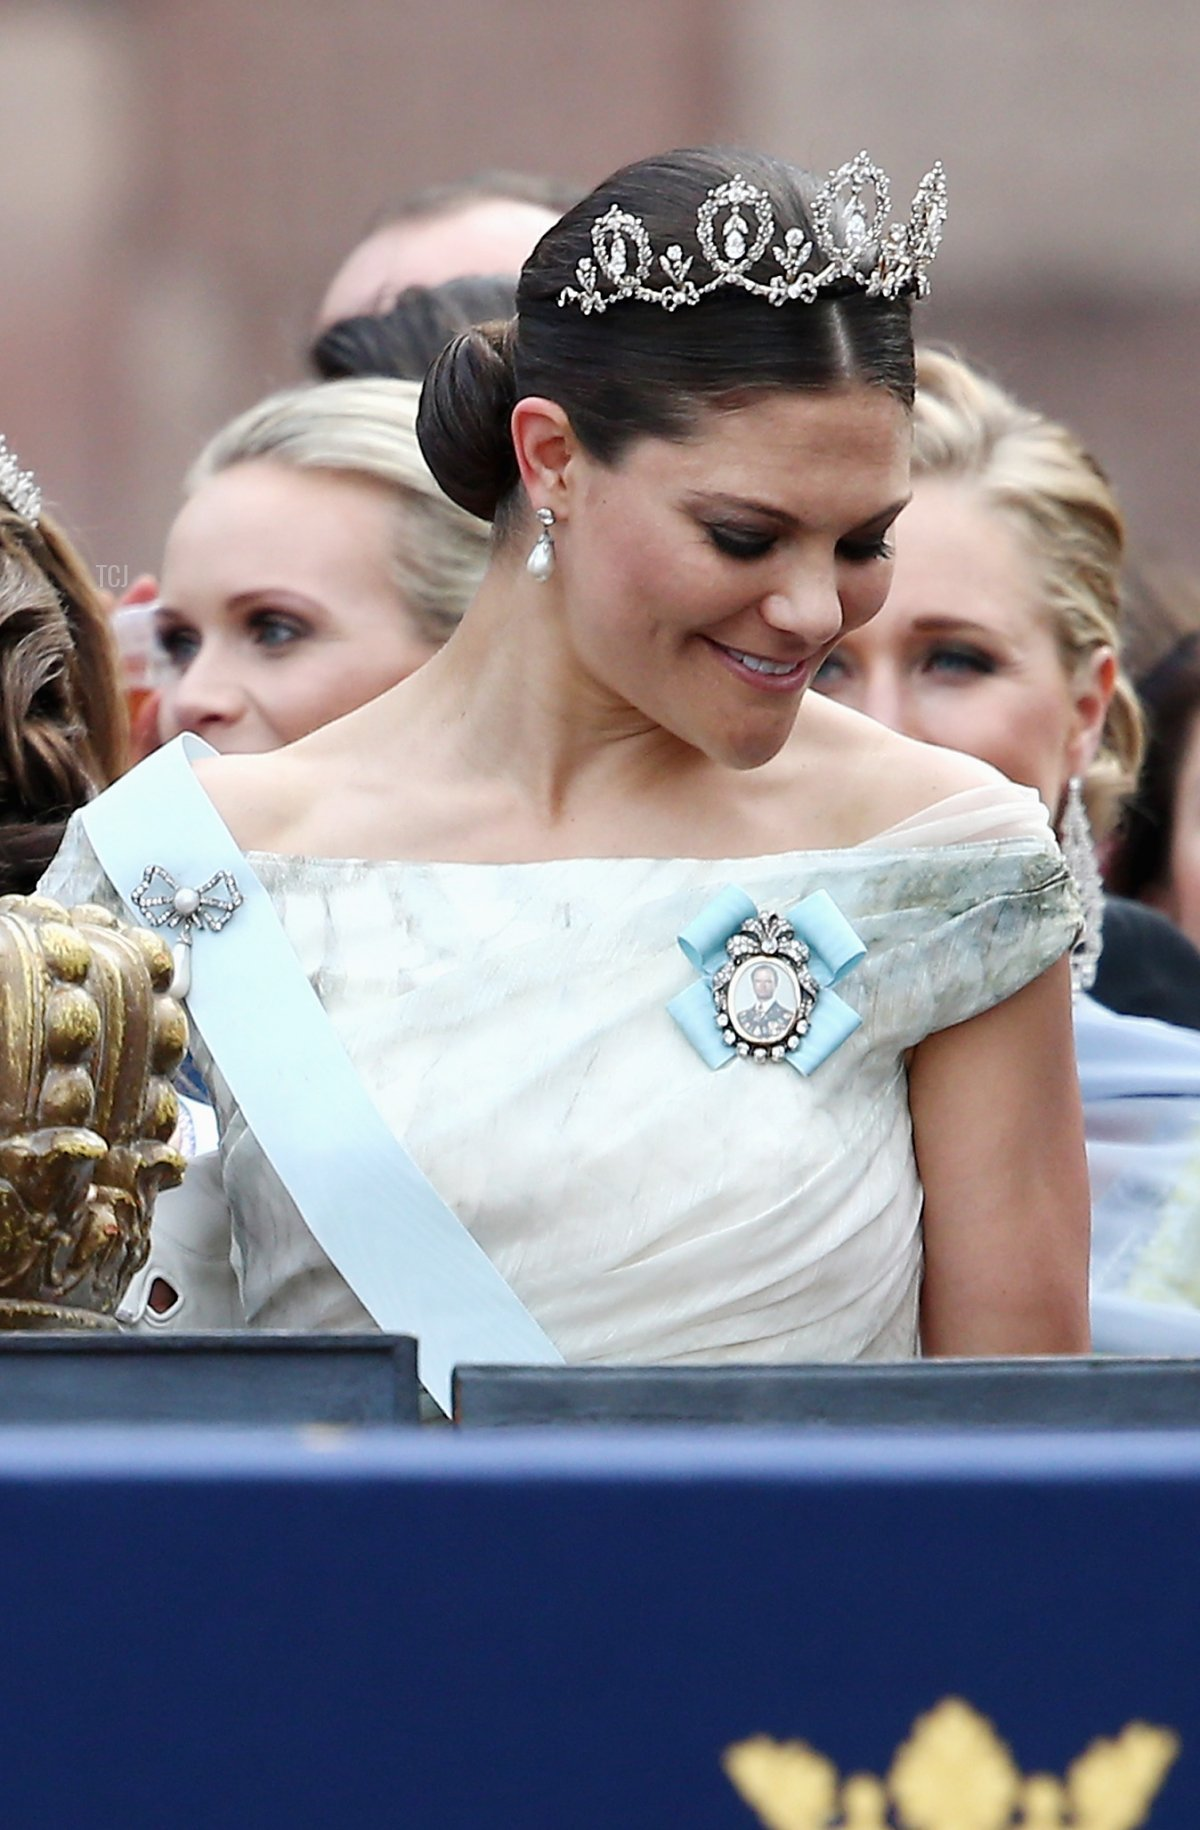 Prince Carl Philip of Sweden places one hand on the crown as he stands next to his sister, Crown Princess Victoria of Sweden, after his marriage ceremony to Princess Sofia, at The Royal Palace on June 13, 2015 in Stockholm, Sweden